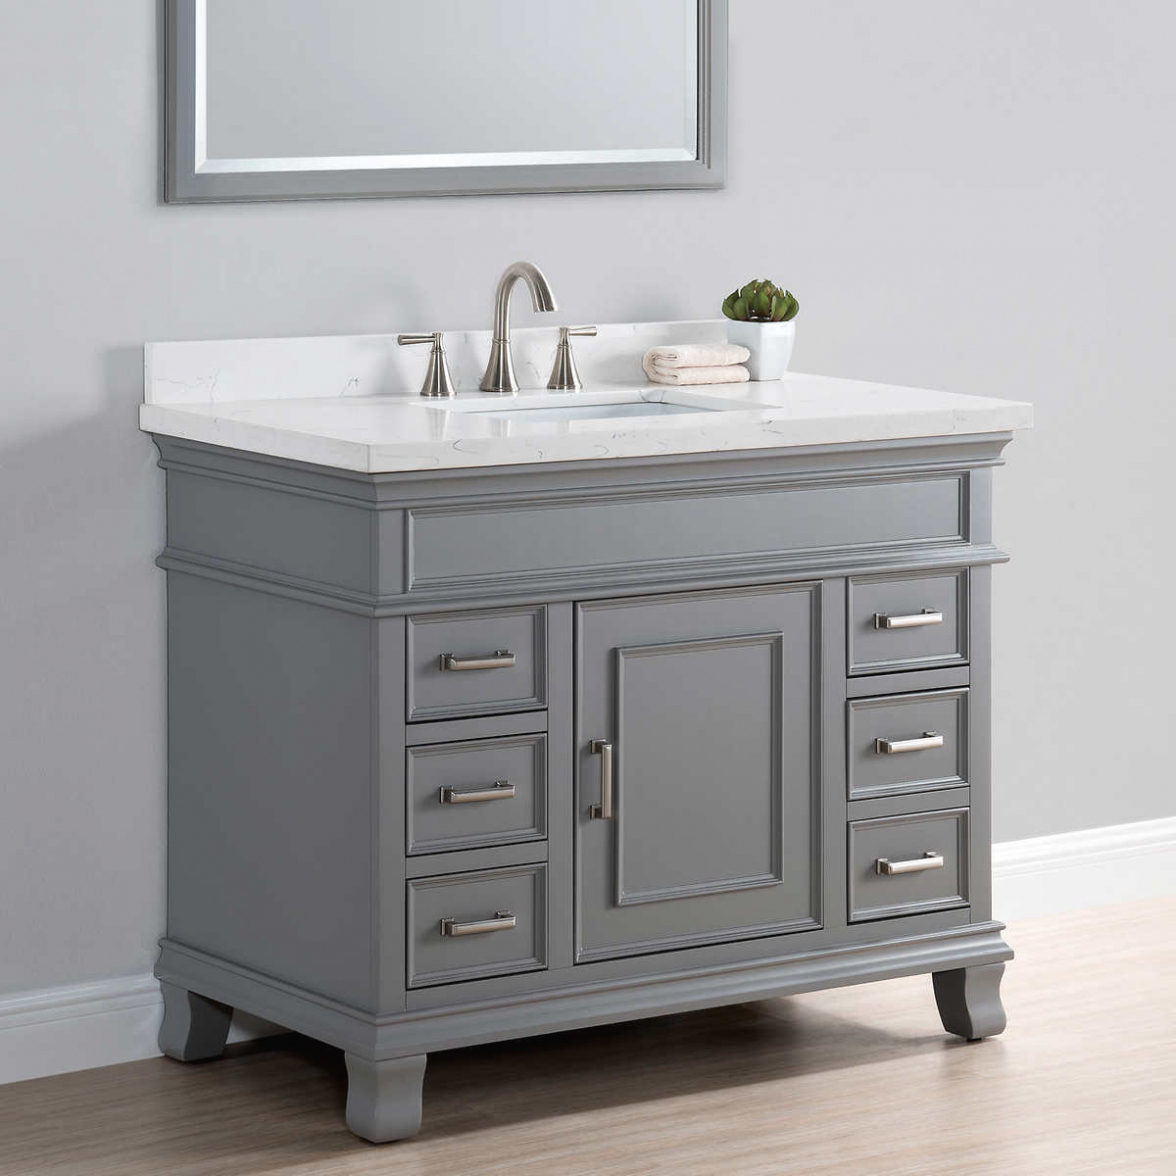 Fabulous Bath: Home Design : Fascinating 42 Bathroom Vanity Cabinets Inch with 42 Bathroom Vanity Cabinets